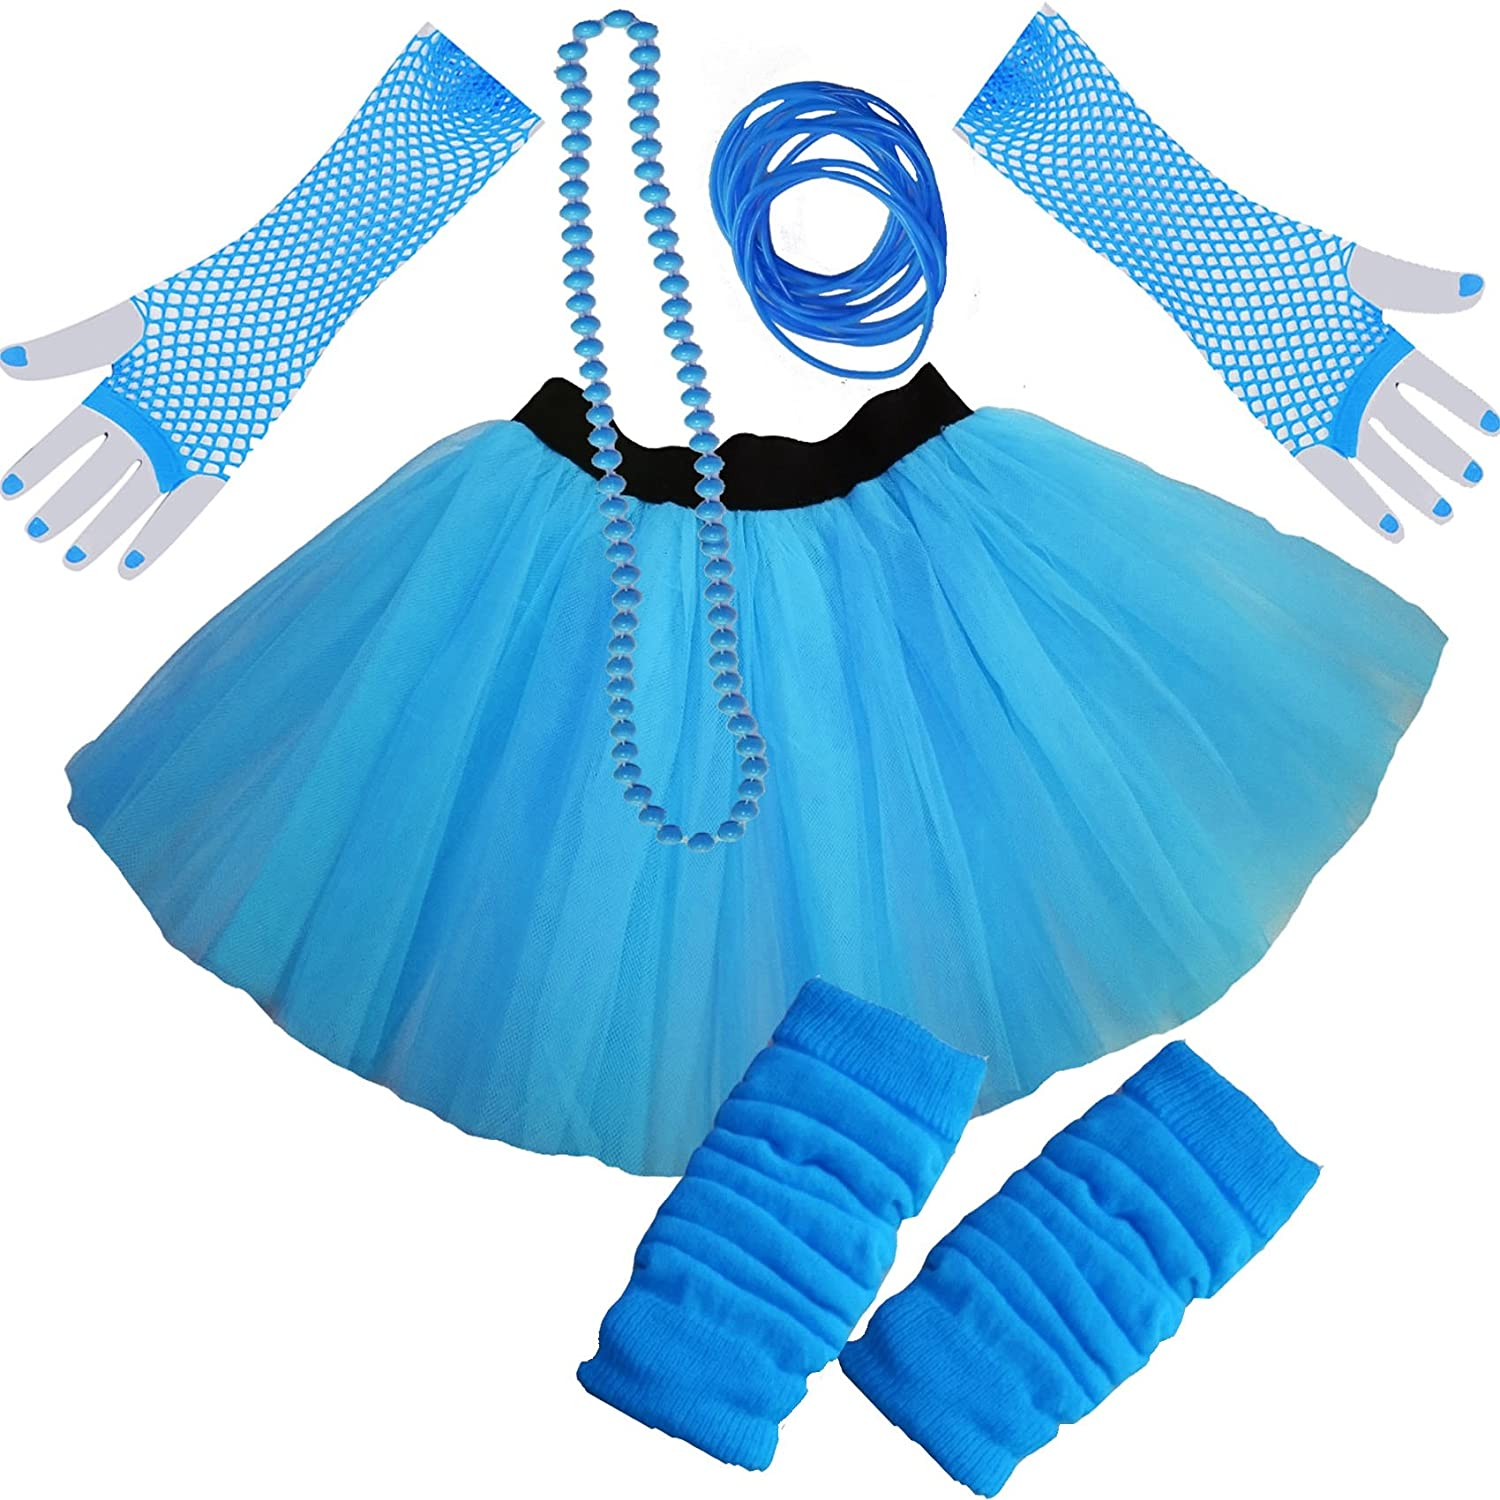 Ladies NEON TUTU SKIRT LEGWARMERS GLOVES 5 piece set (UK 8-14, TURQUOISE )